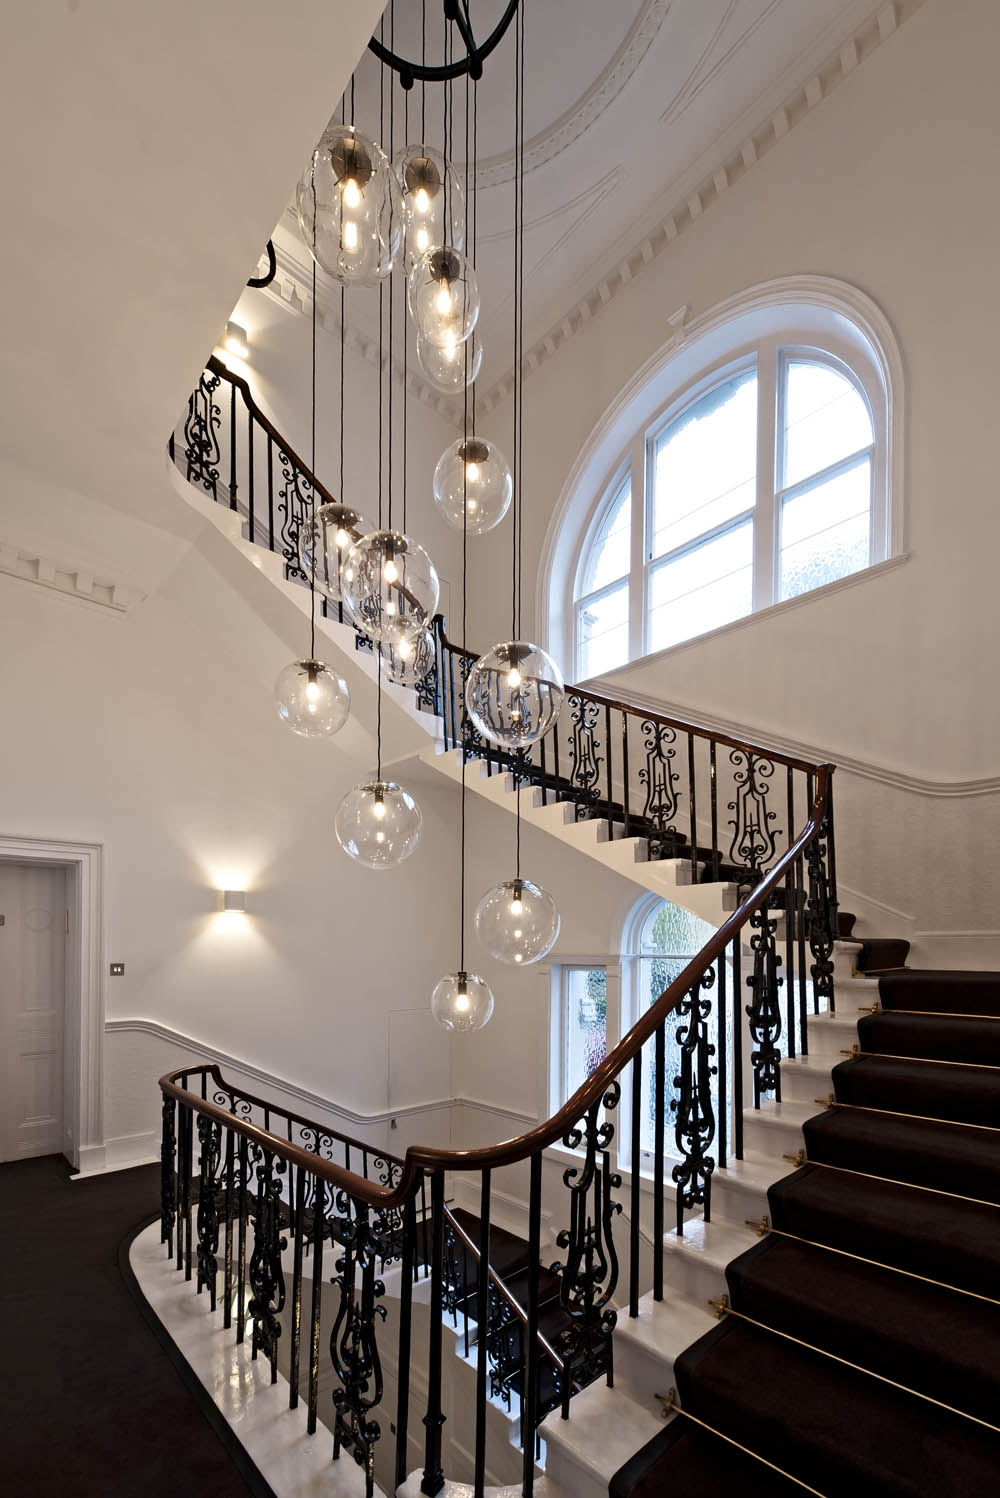 Popular Photo of Stairway Chandelier